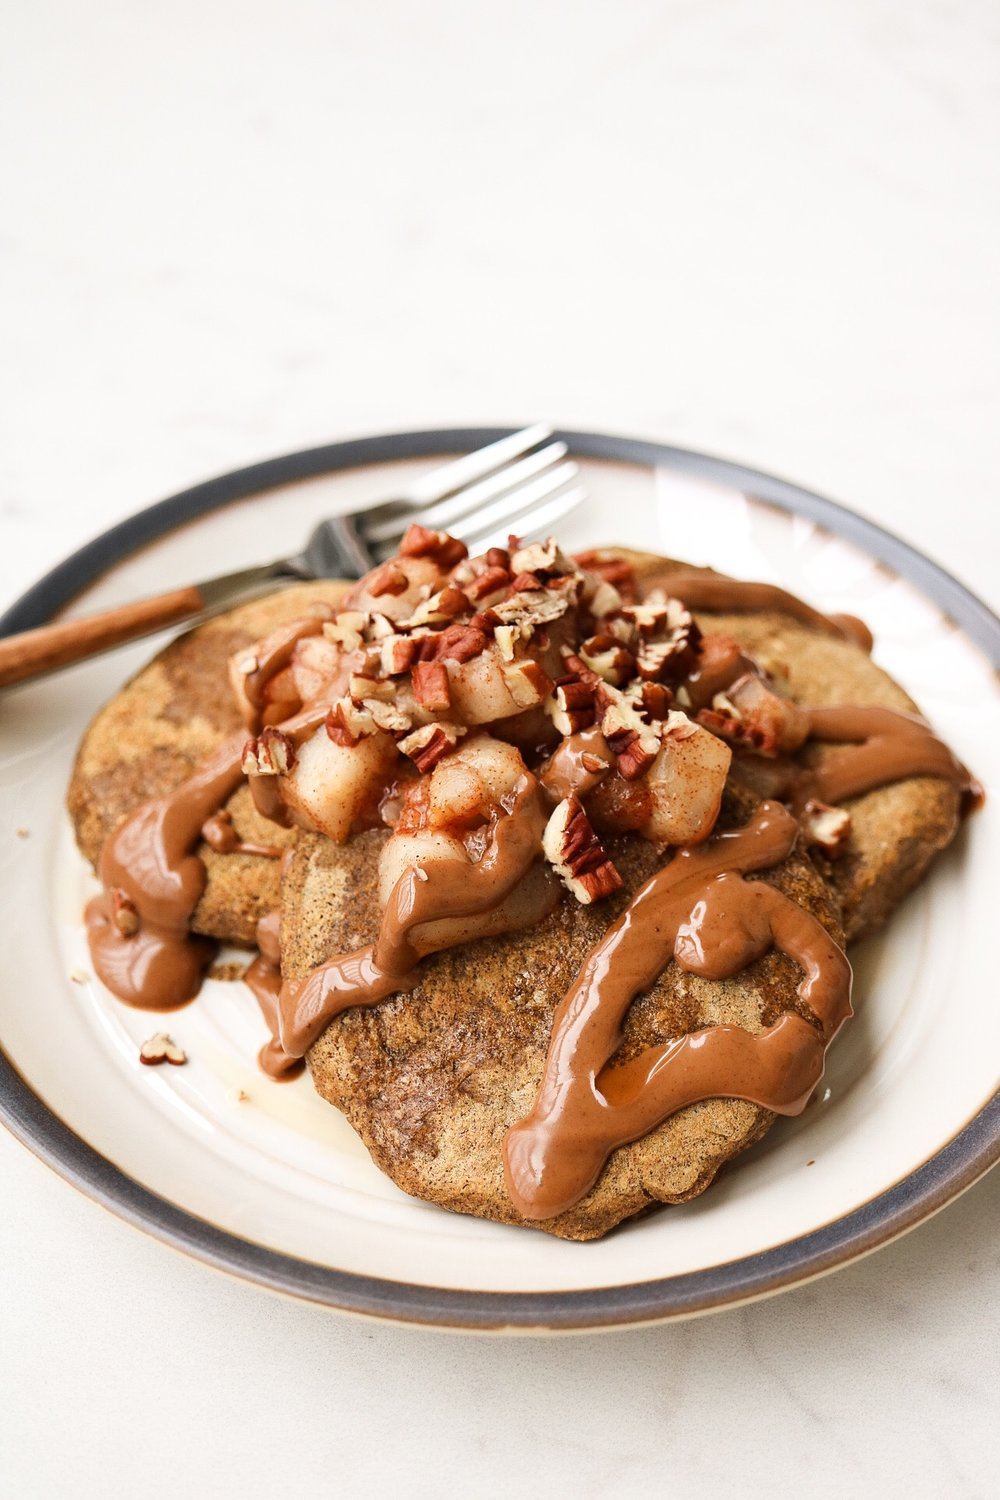 I topped mine with maple syrup, pecans, sautéed pear, and caramel cashew butter.  Fancy, I know .